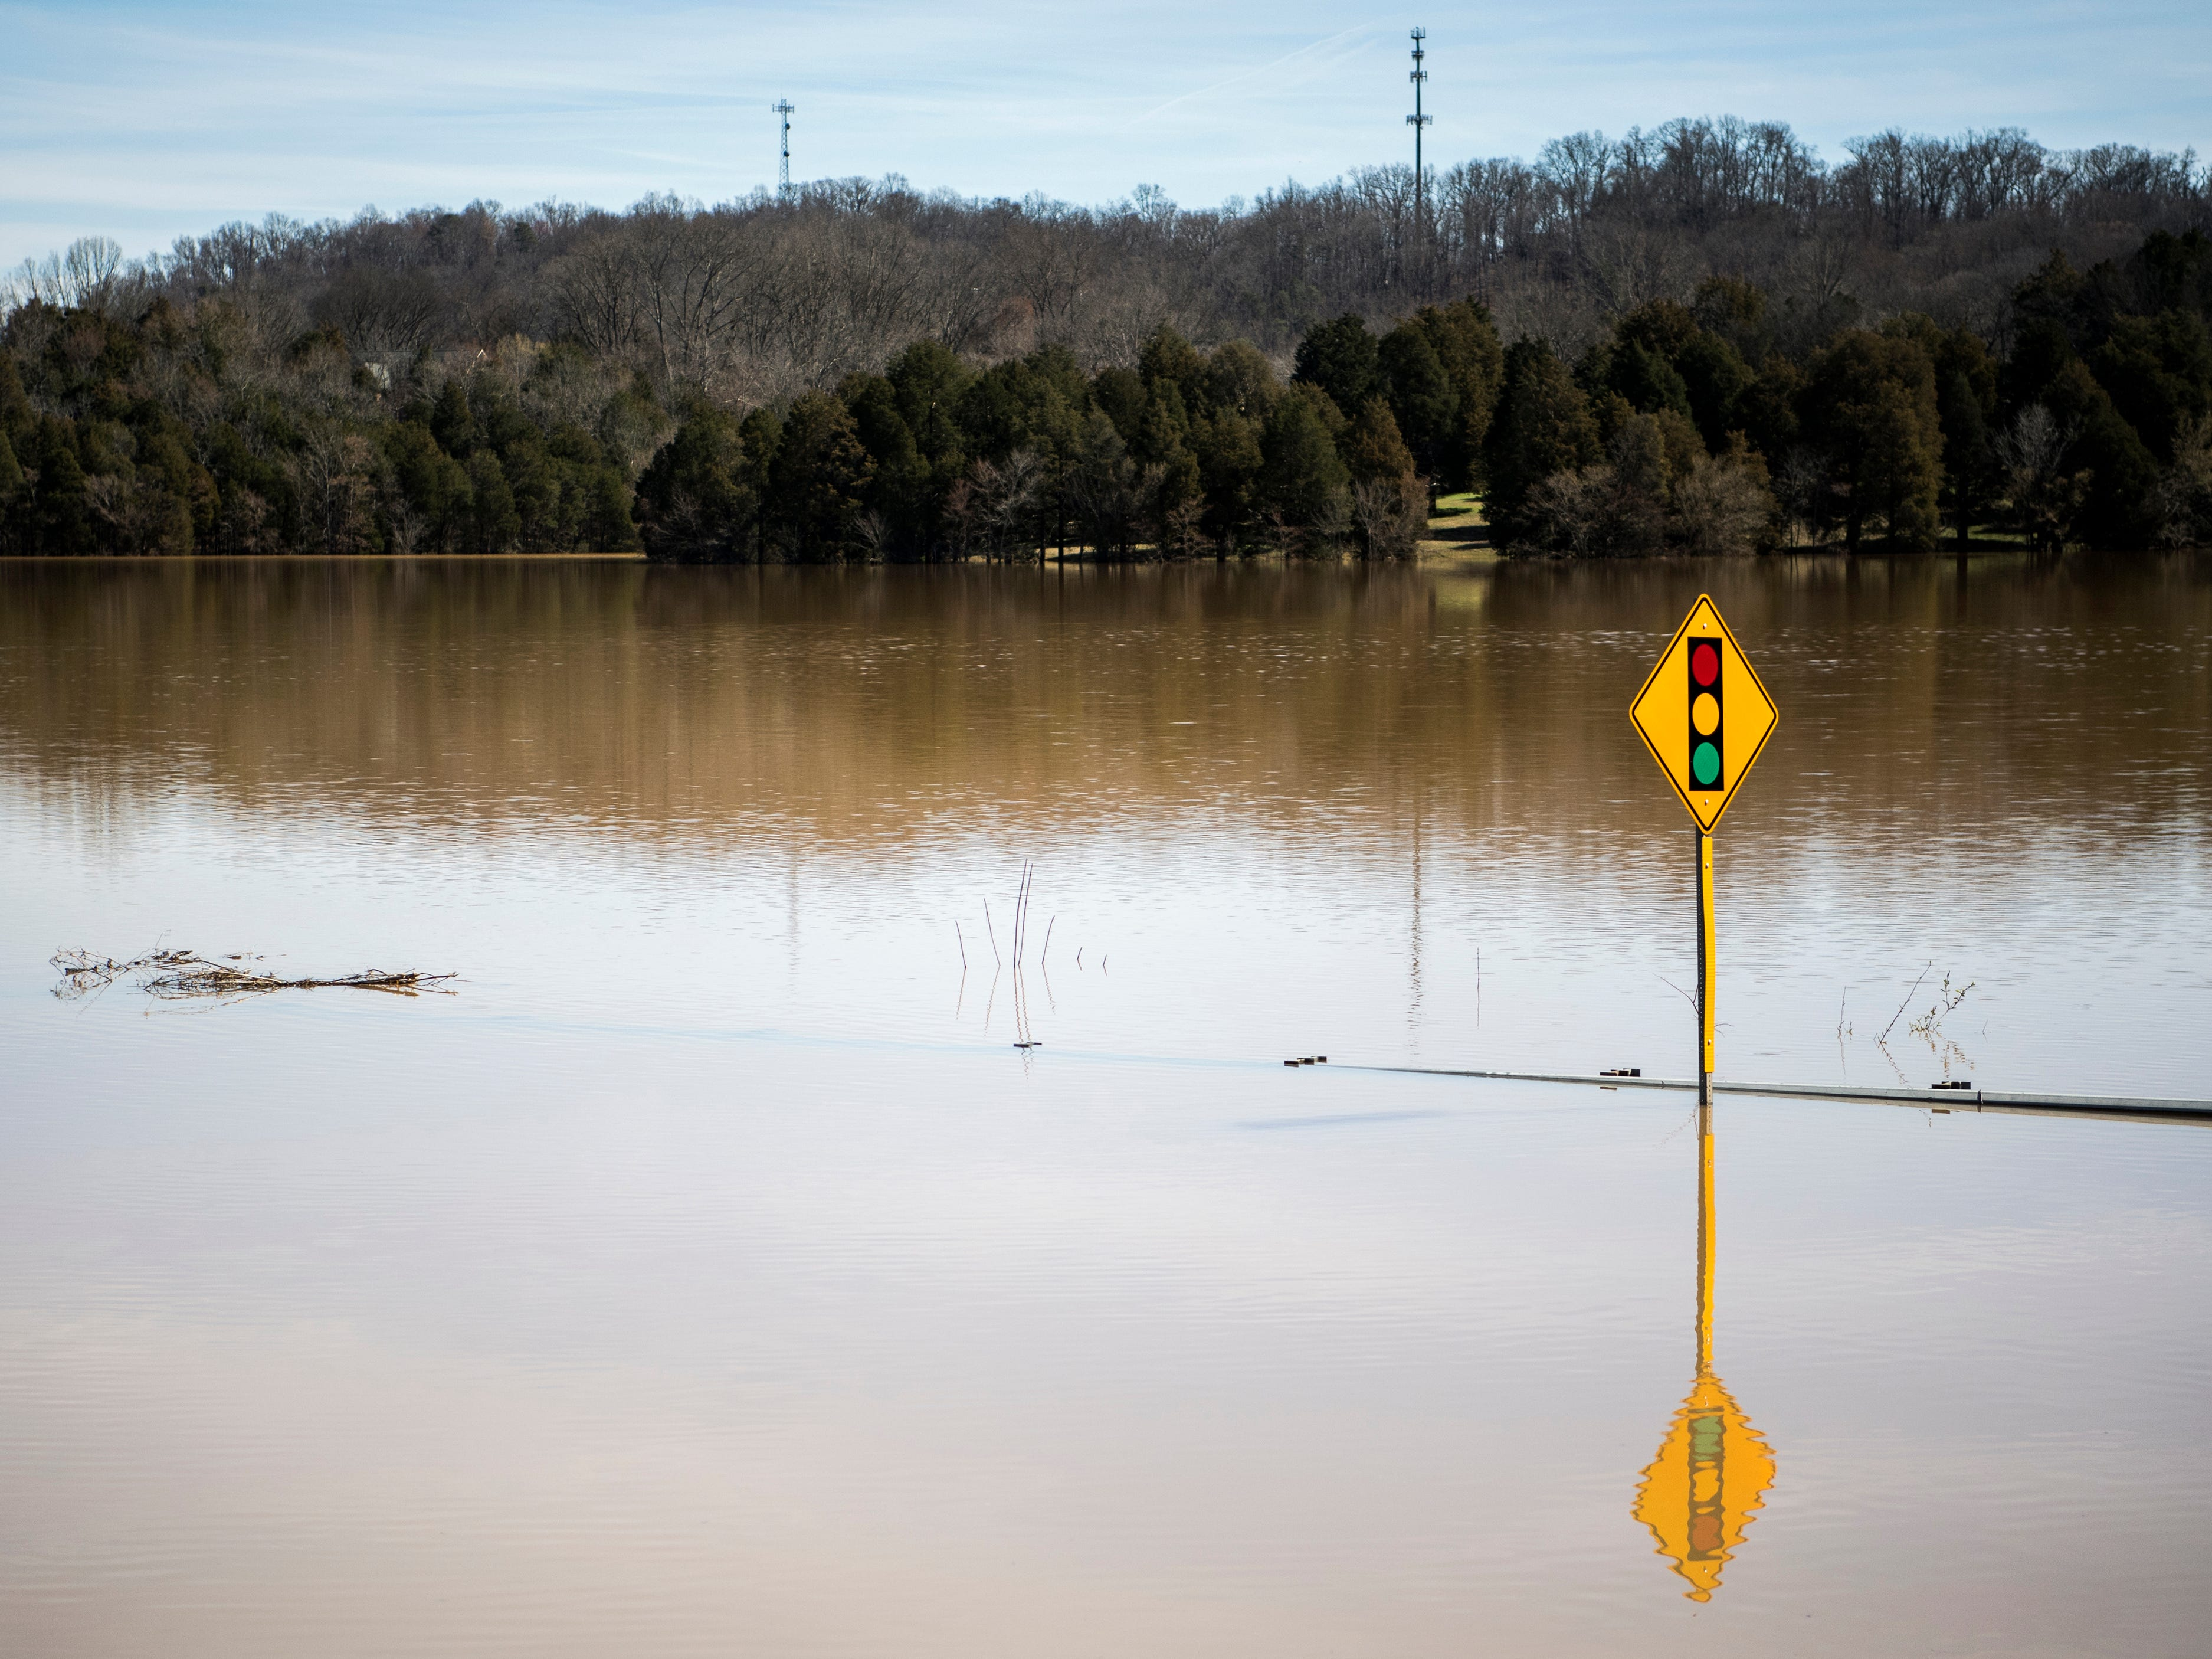 Water continues to flood Northshore Drive near the intersection of Northshore Drive and Ebenezer Road on Monday, February 25, 2019.